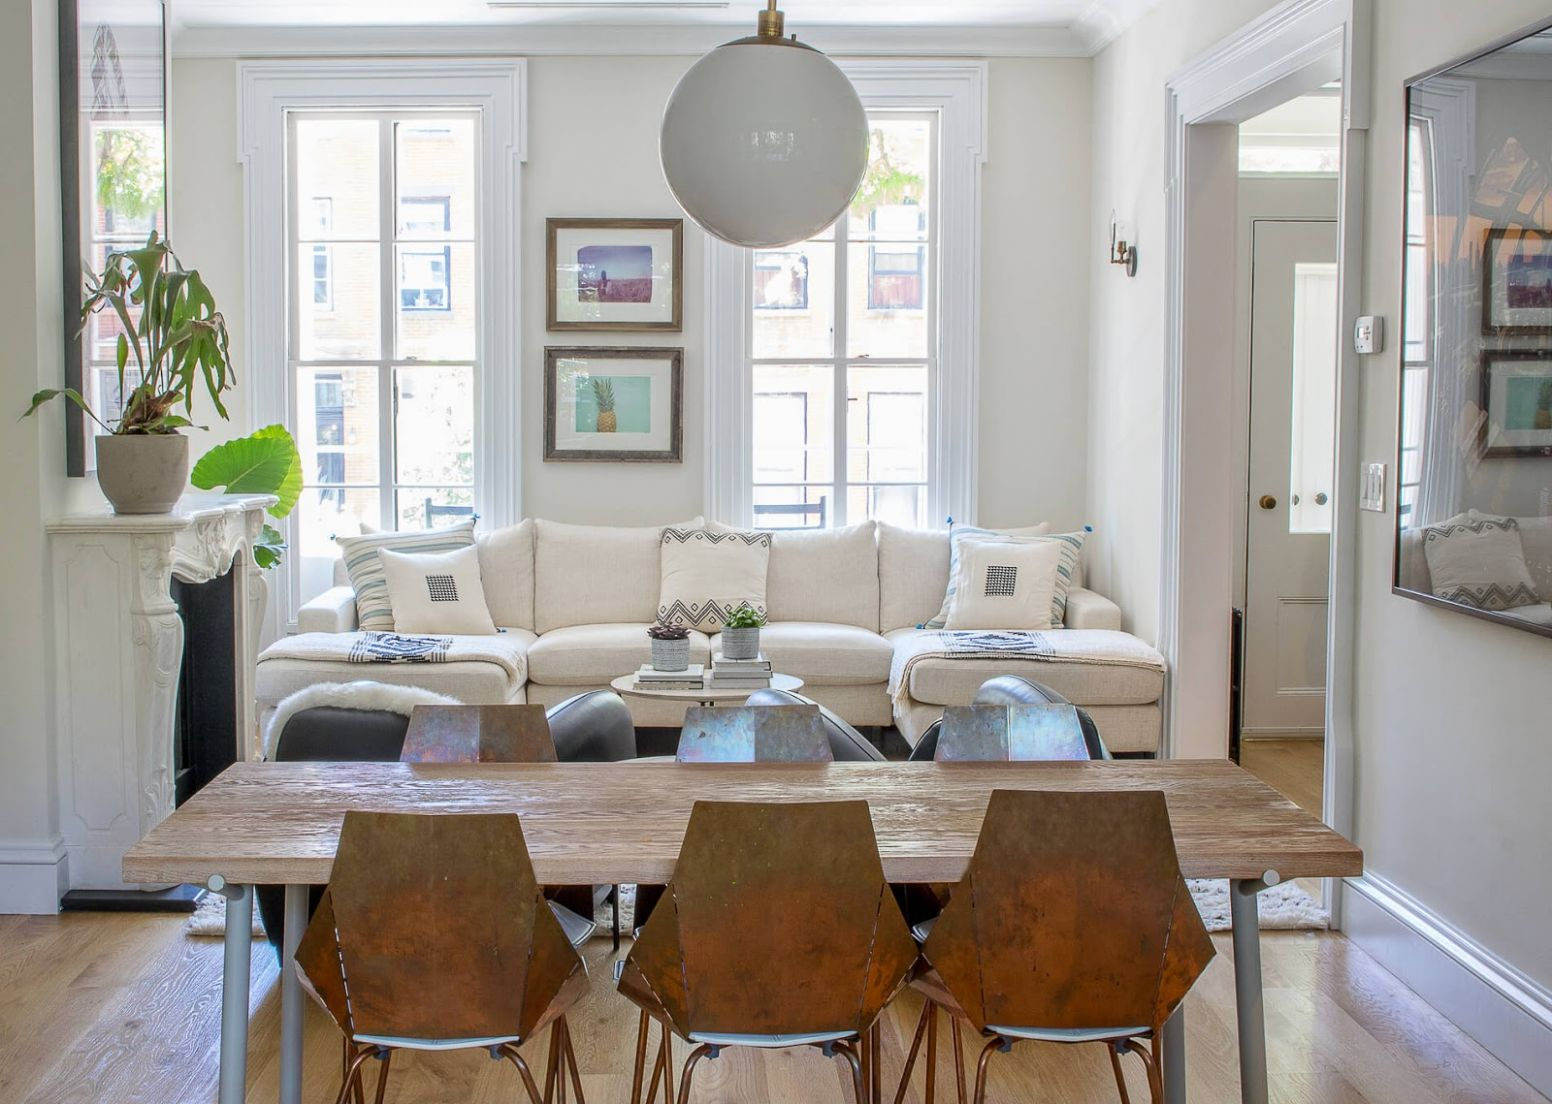 Management Chair: Living-Dining Room Hybrid Layout Ideas - dining room entry ideas